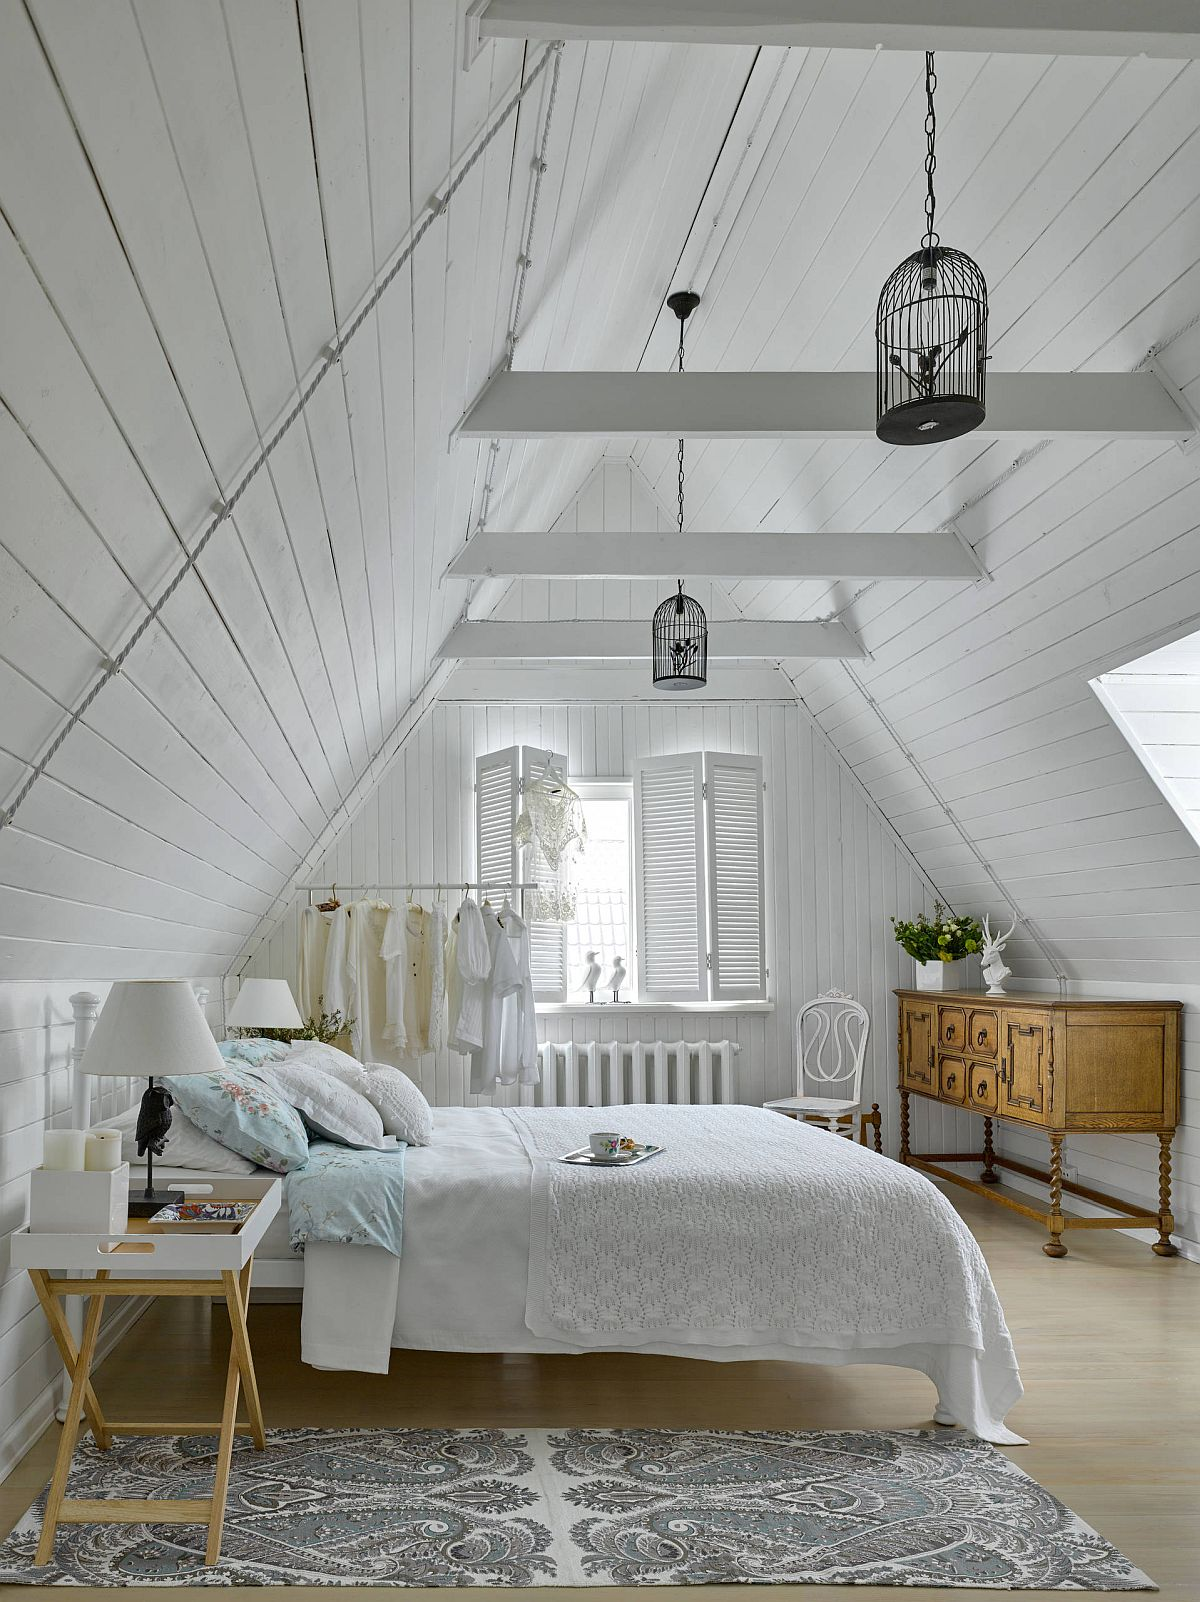 Gentle wooden accents bring contrast to an otherwise beautiful white attic bedroom with shabby chic style